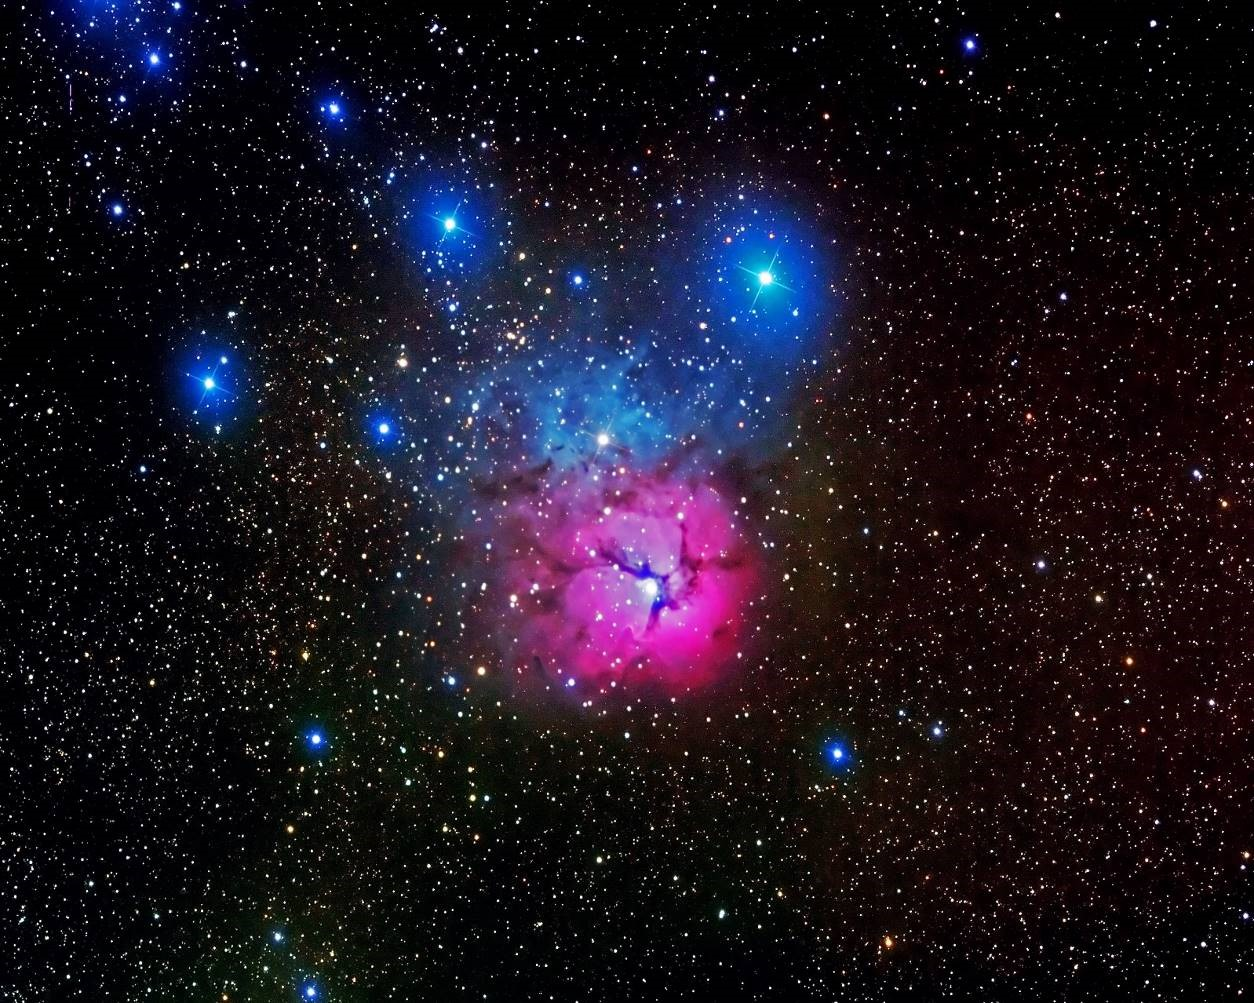 Copy of Trifid Nebula - ITelescope